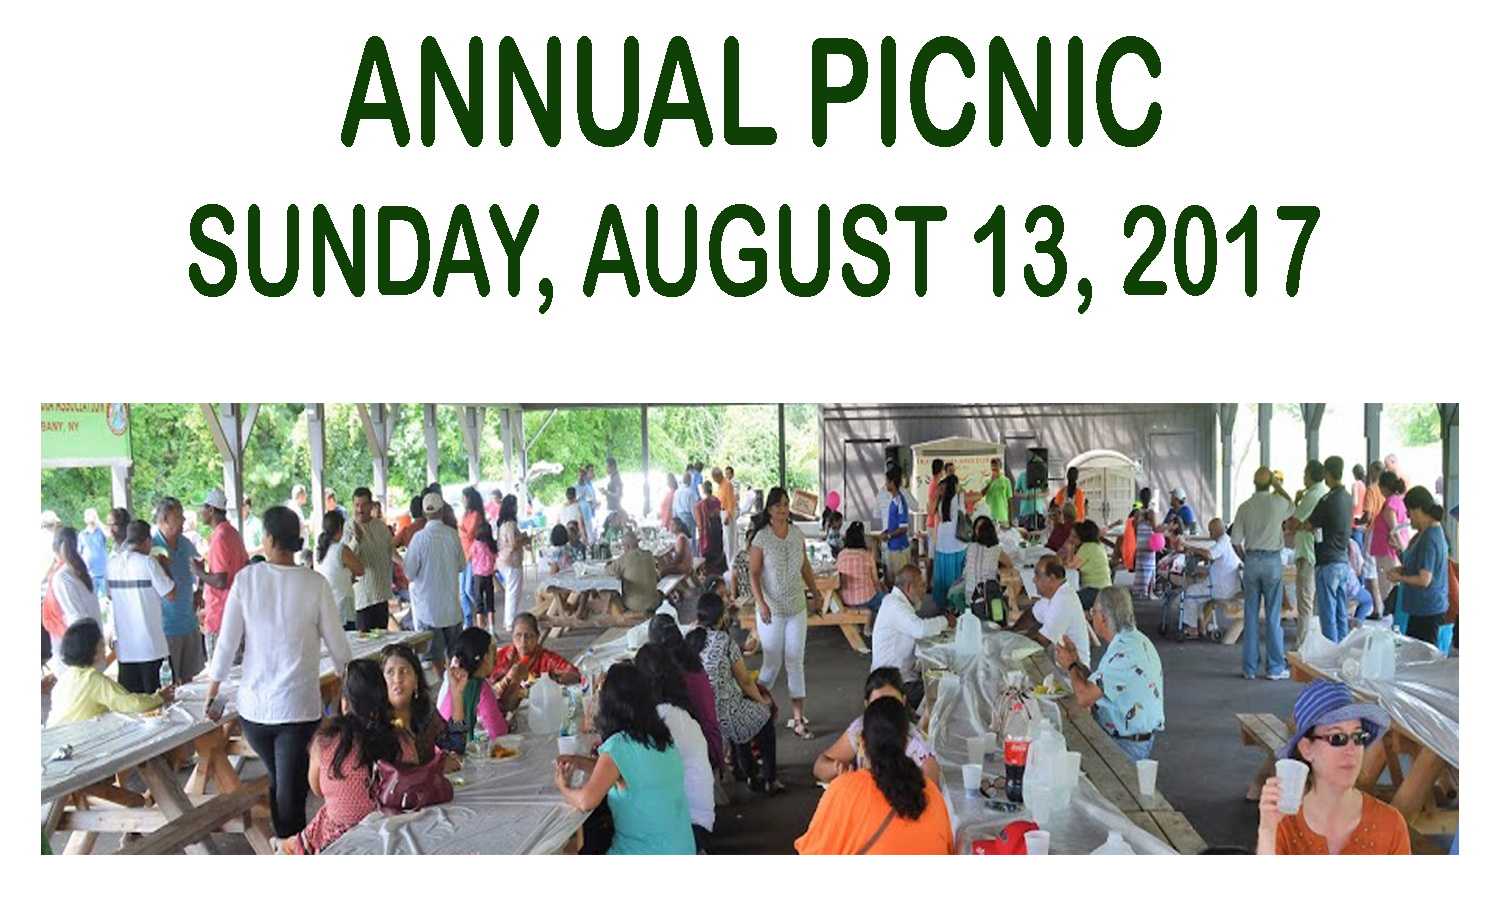 http://triciany.org/wp-content/uploads/2017/03/Picnic-2017.jpg